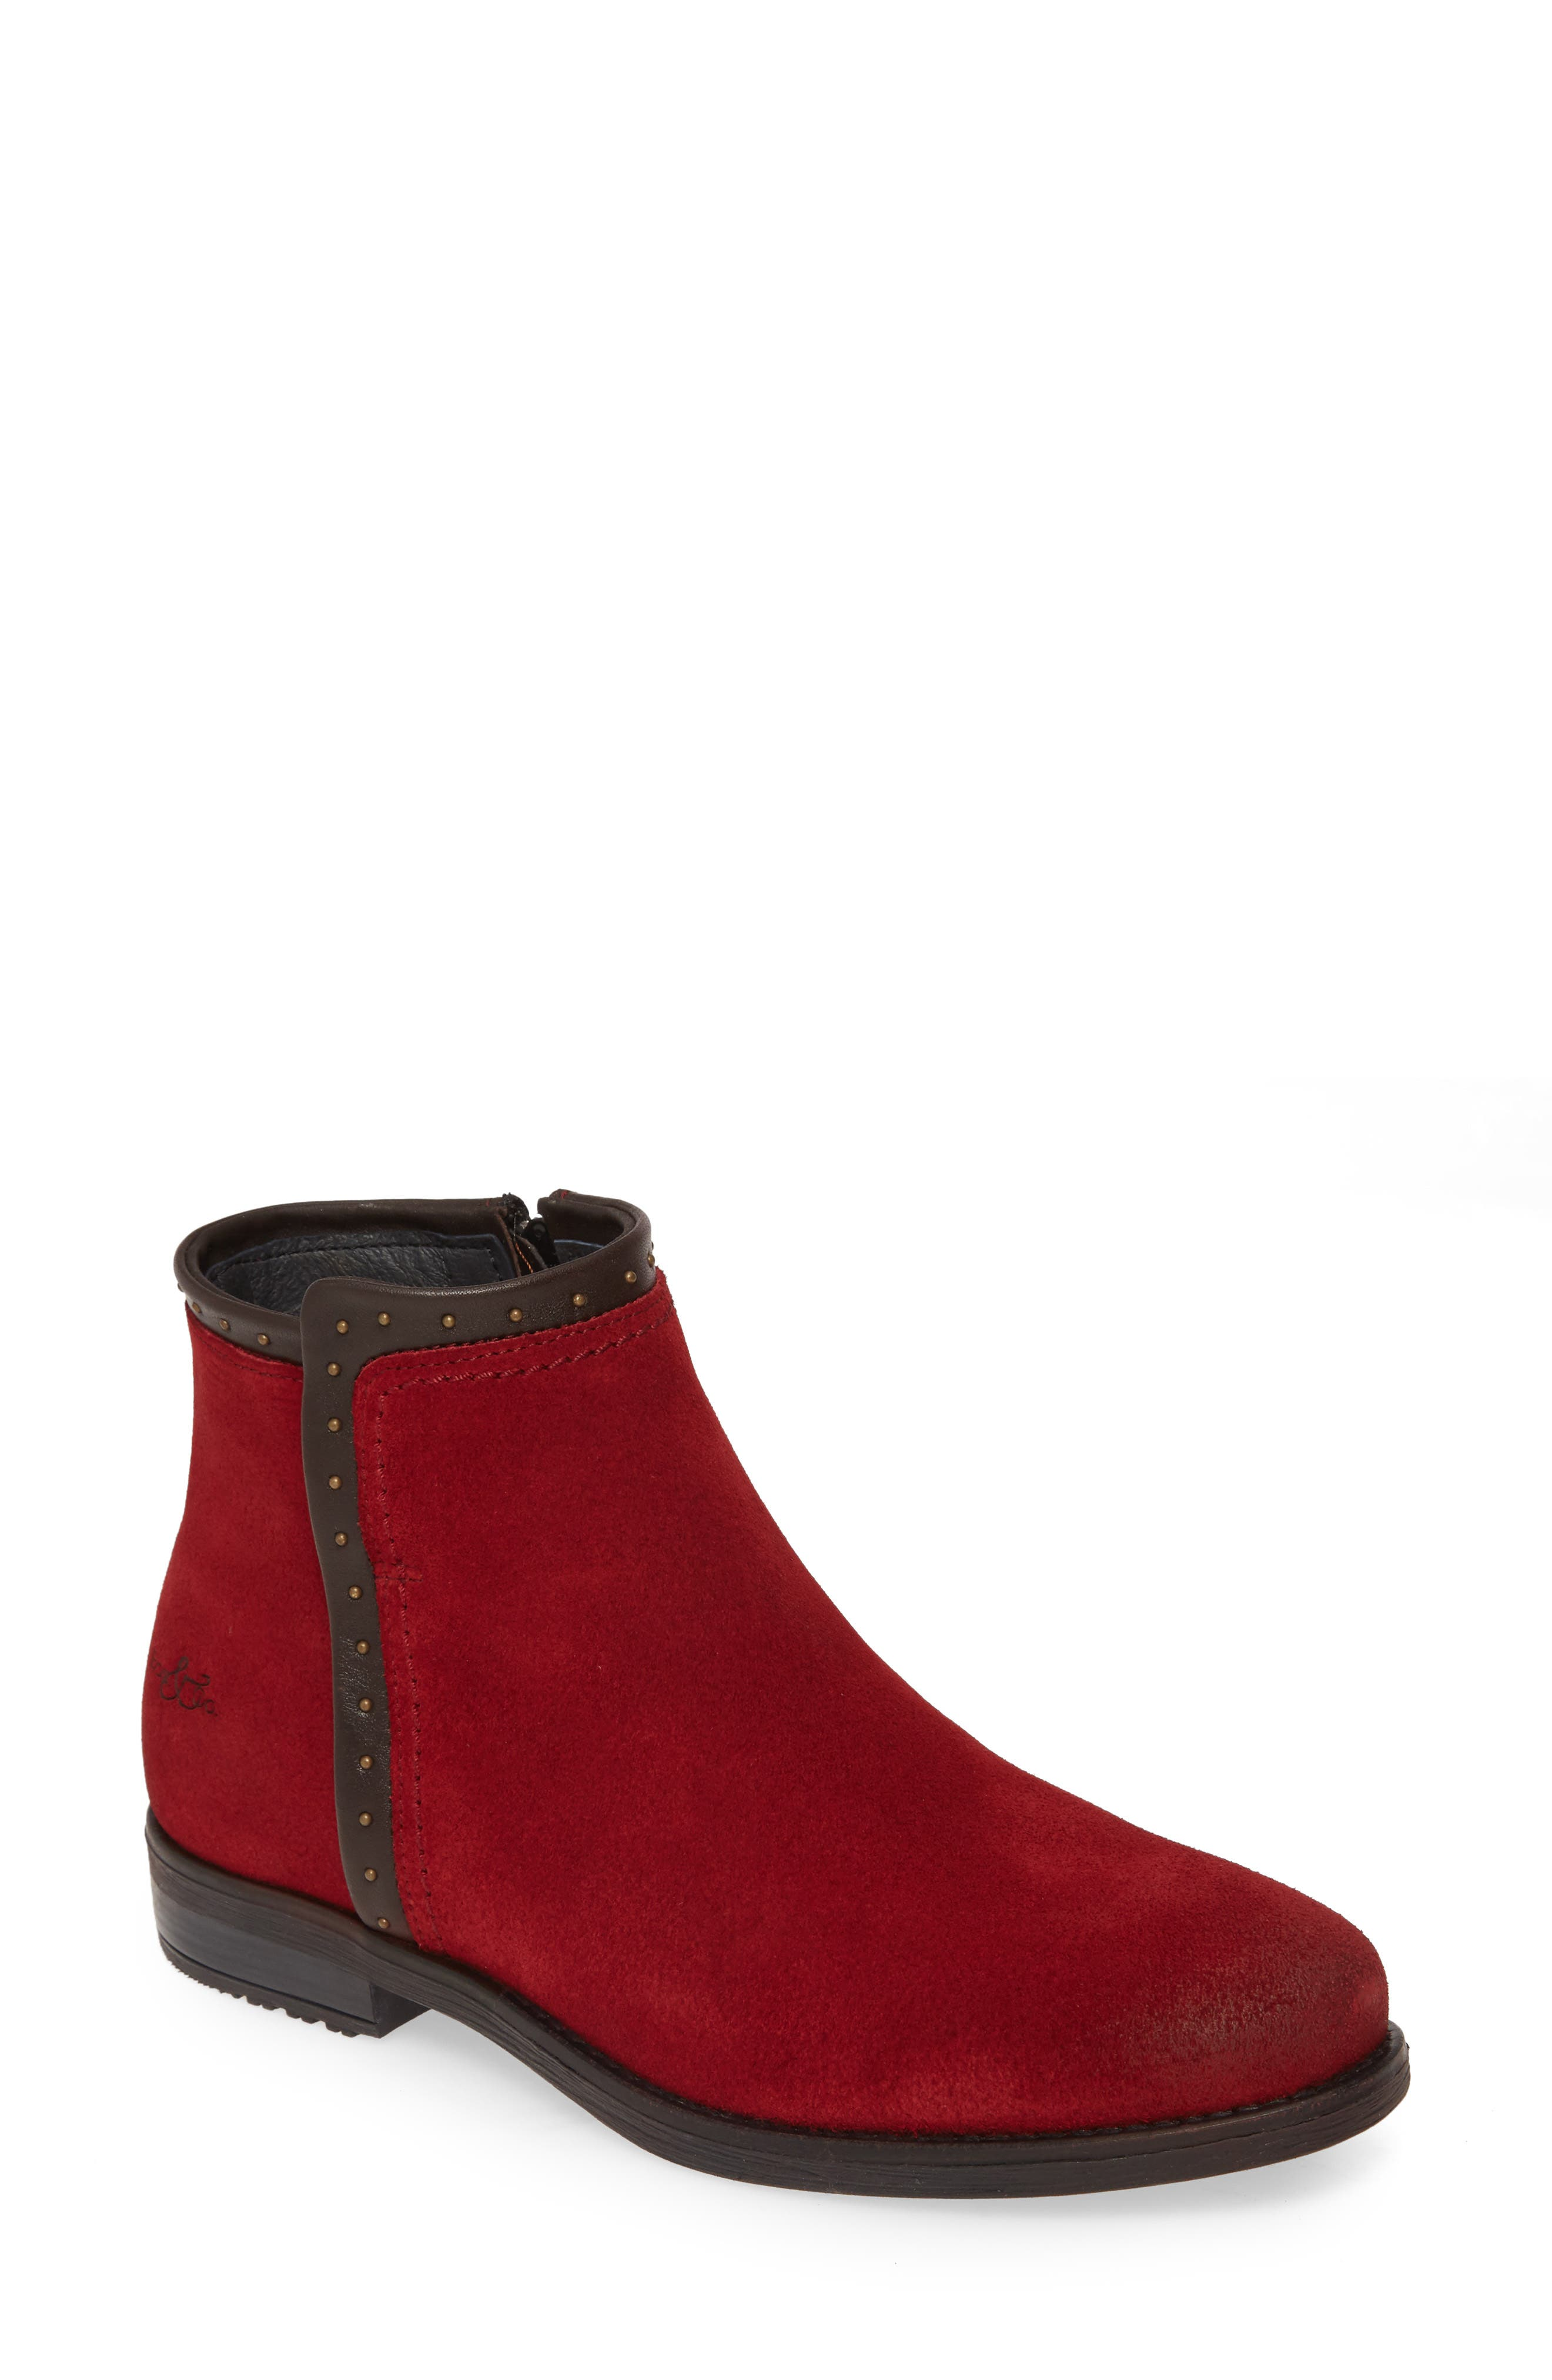 Bos. & Co. Ribos Bootie - Red